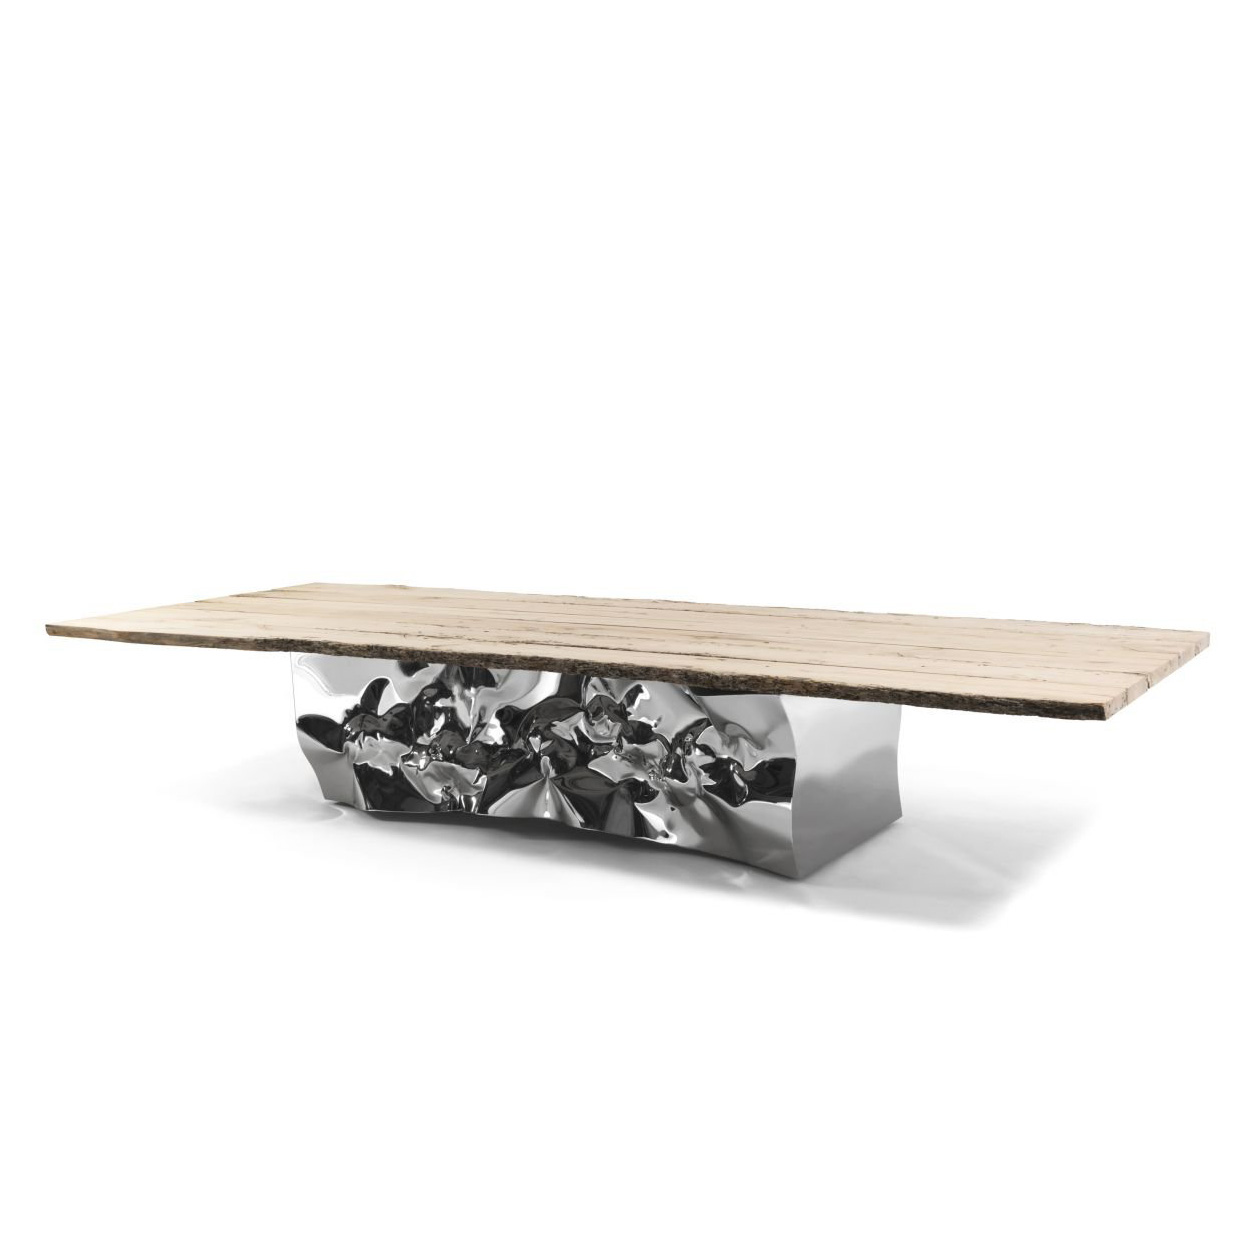 Riflessi In Laguna dining table from Riva 1920, designed by Helidon Xhixha